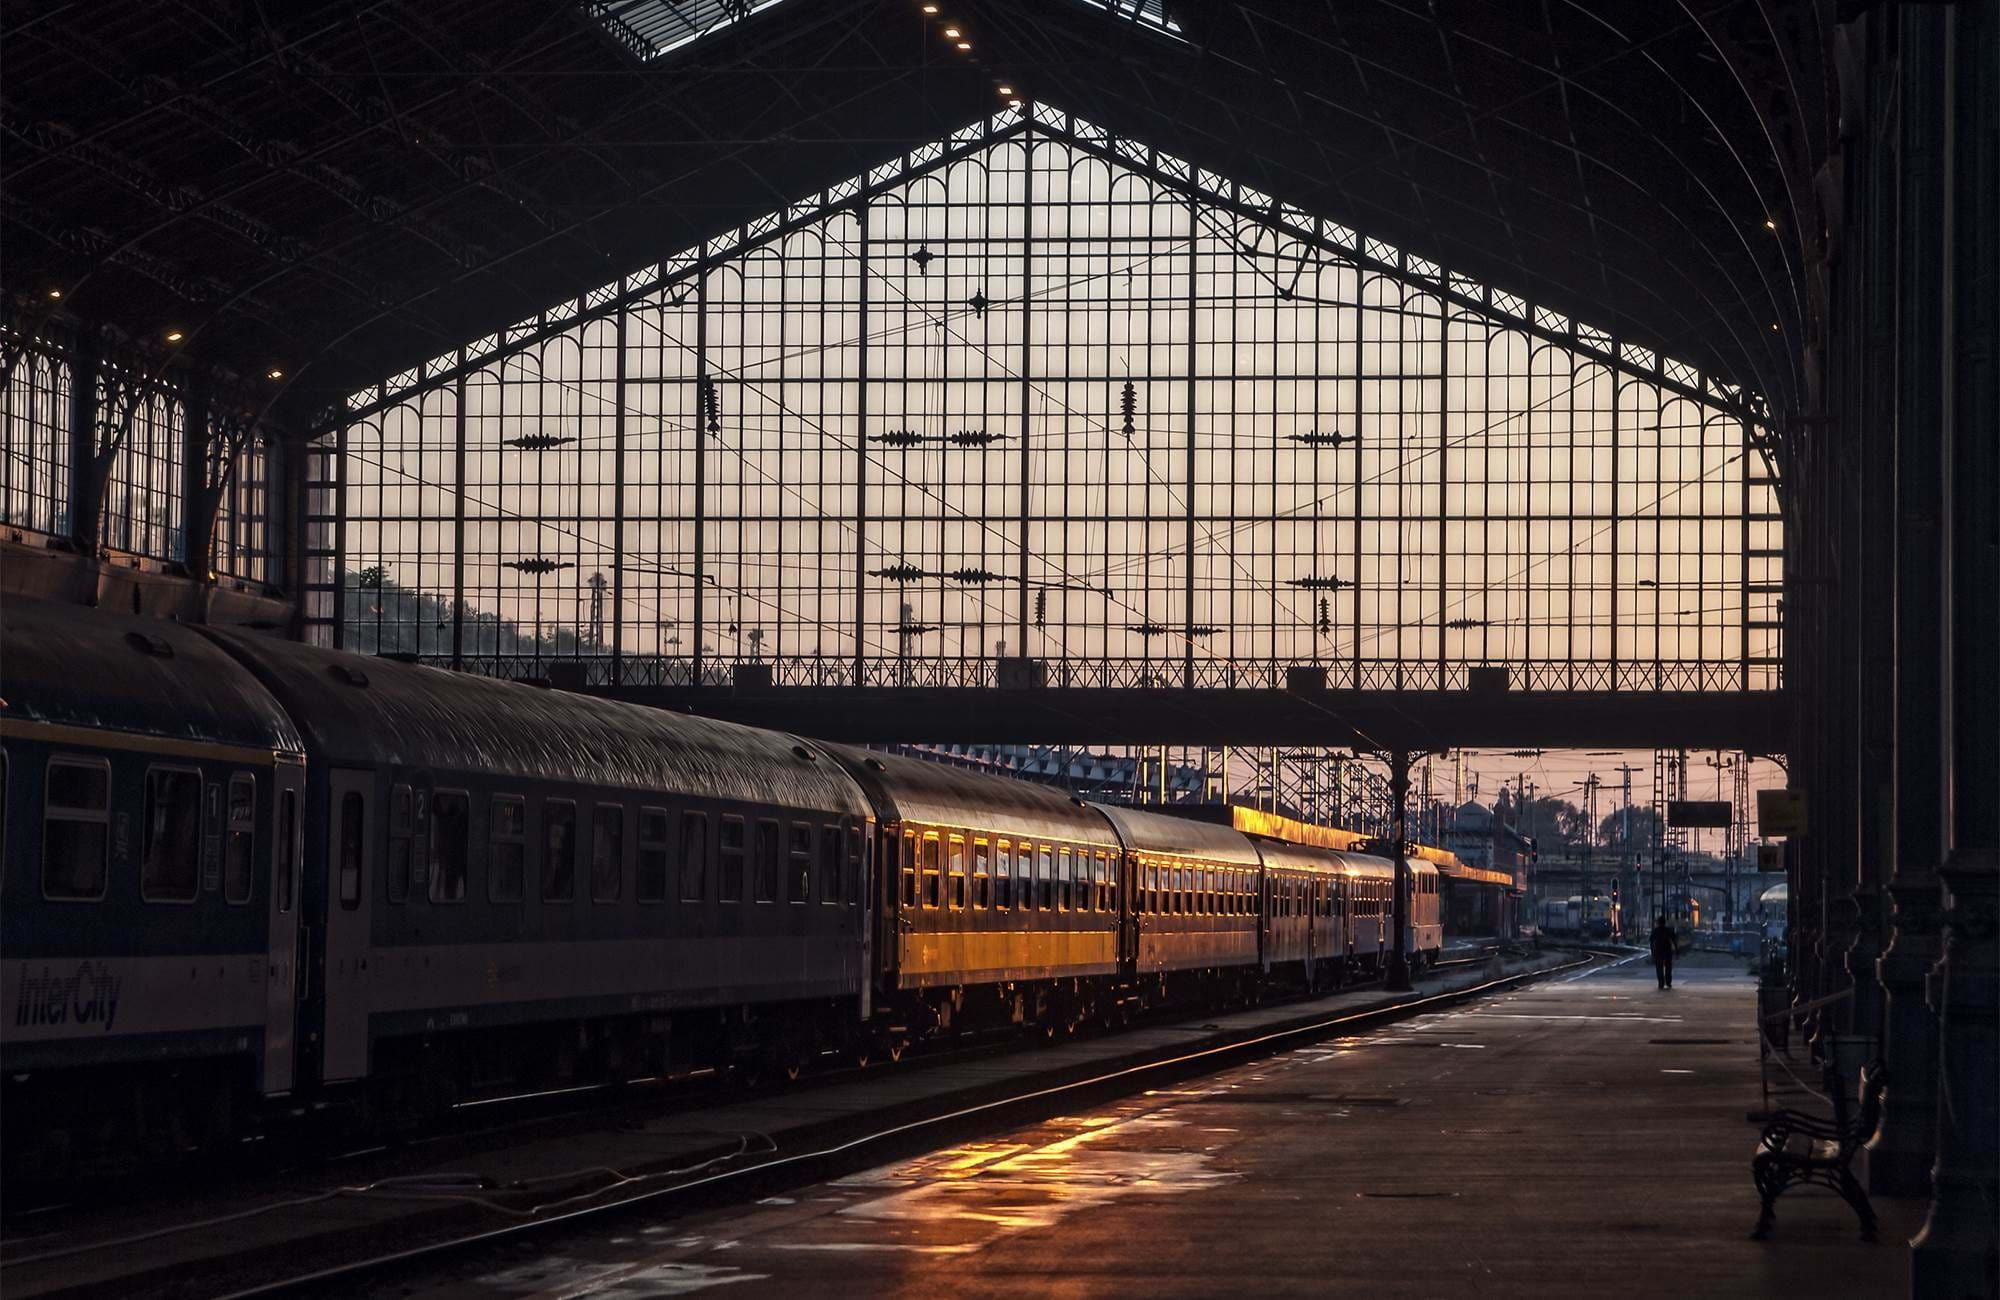 europe-train-station-budapest-hungary-cover